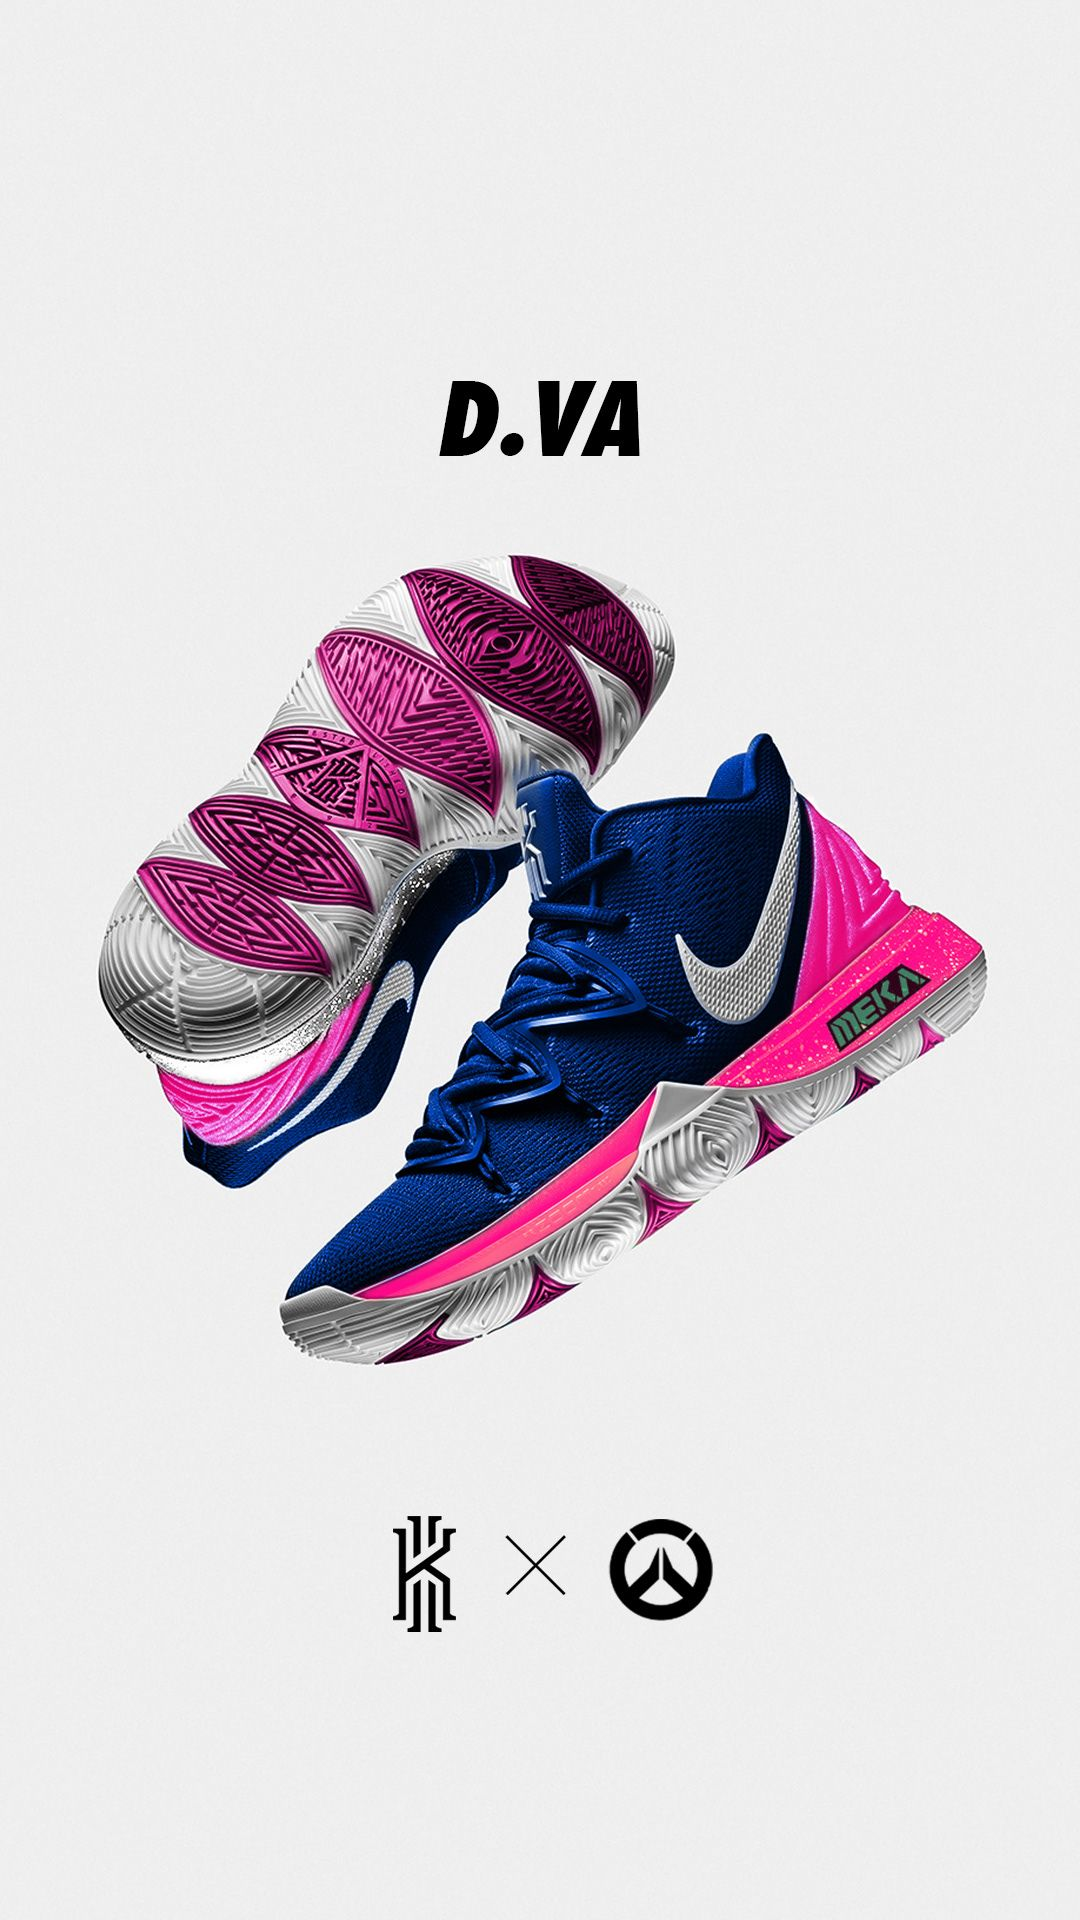 Nike Kyrie 5 X Overwatch Concepts on Behance  5f64099f2